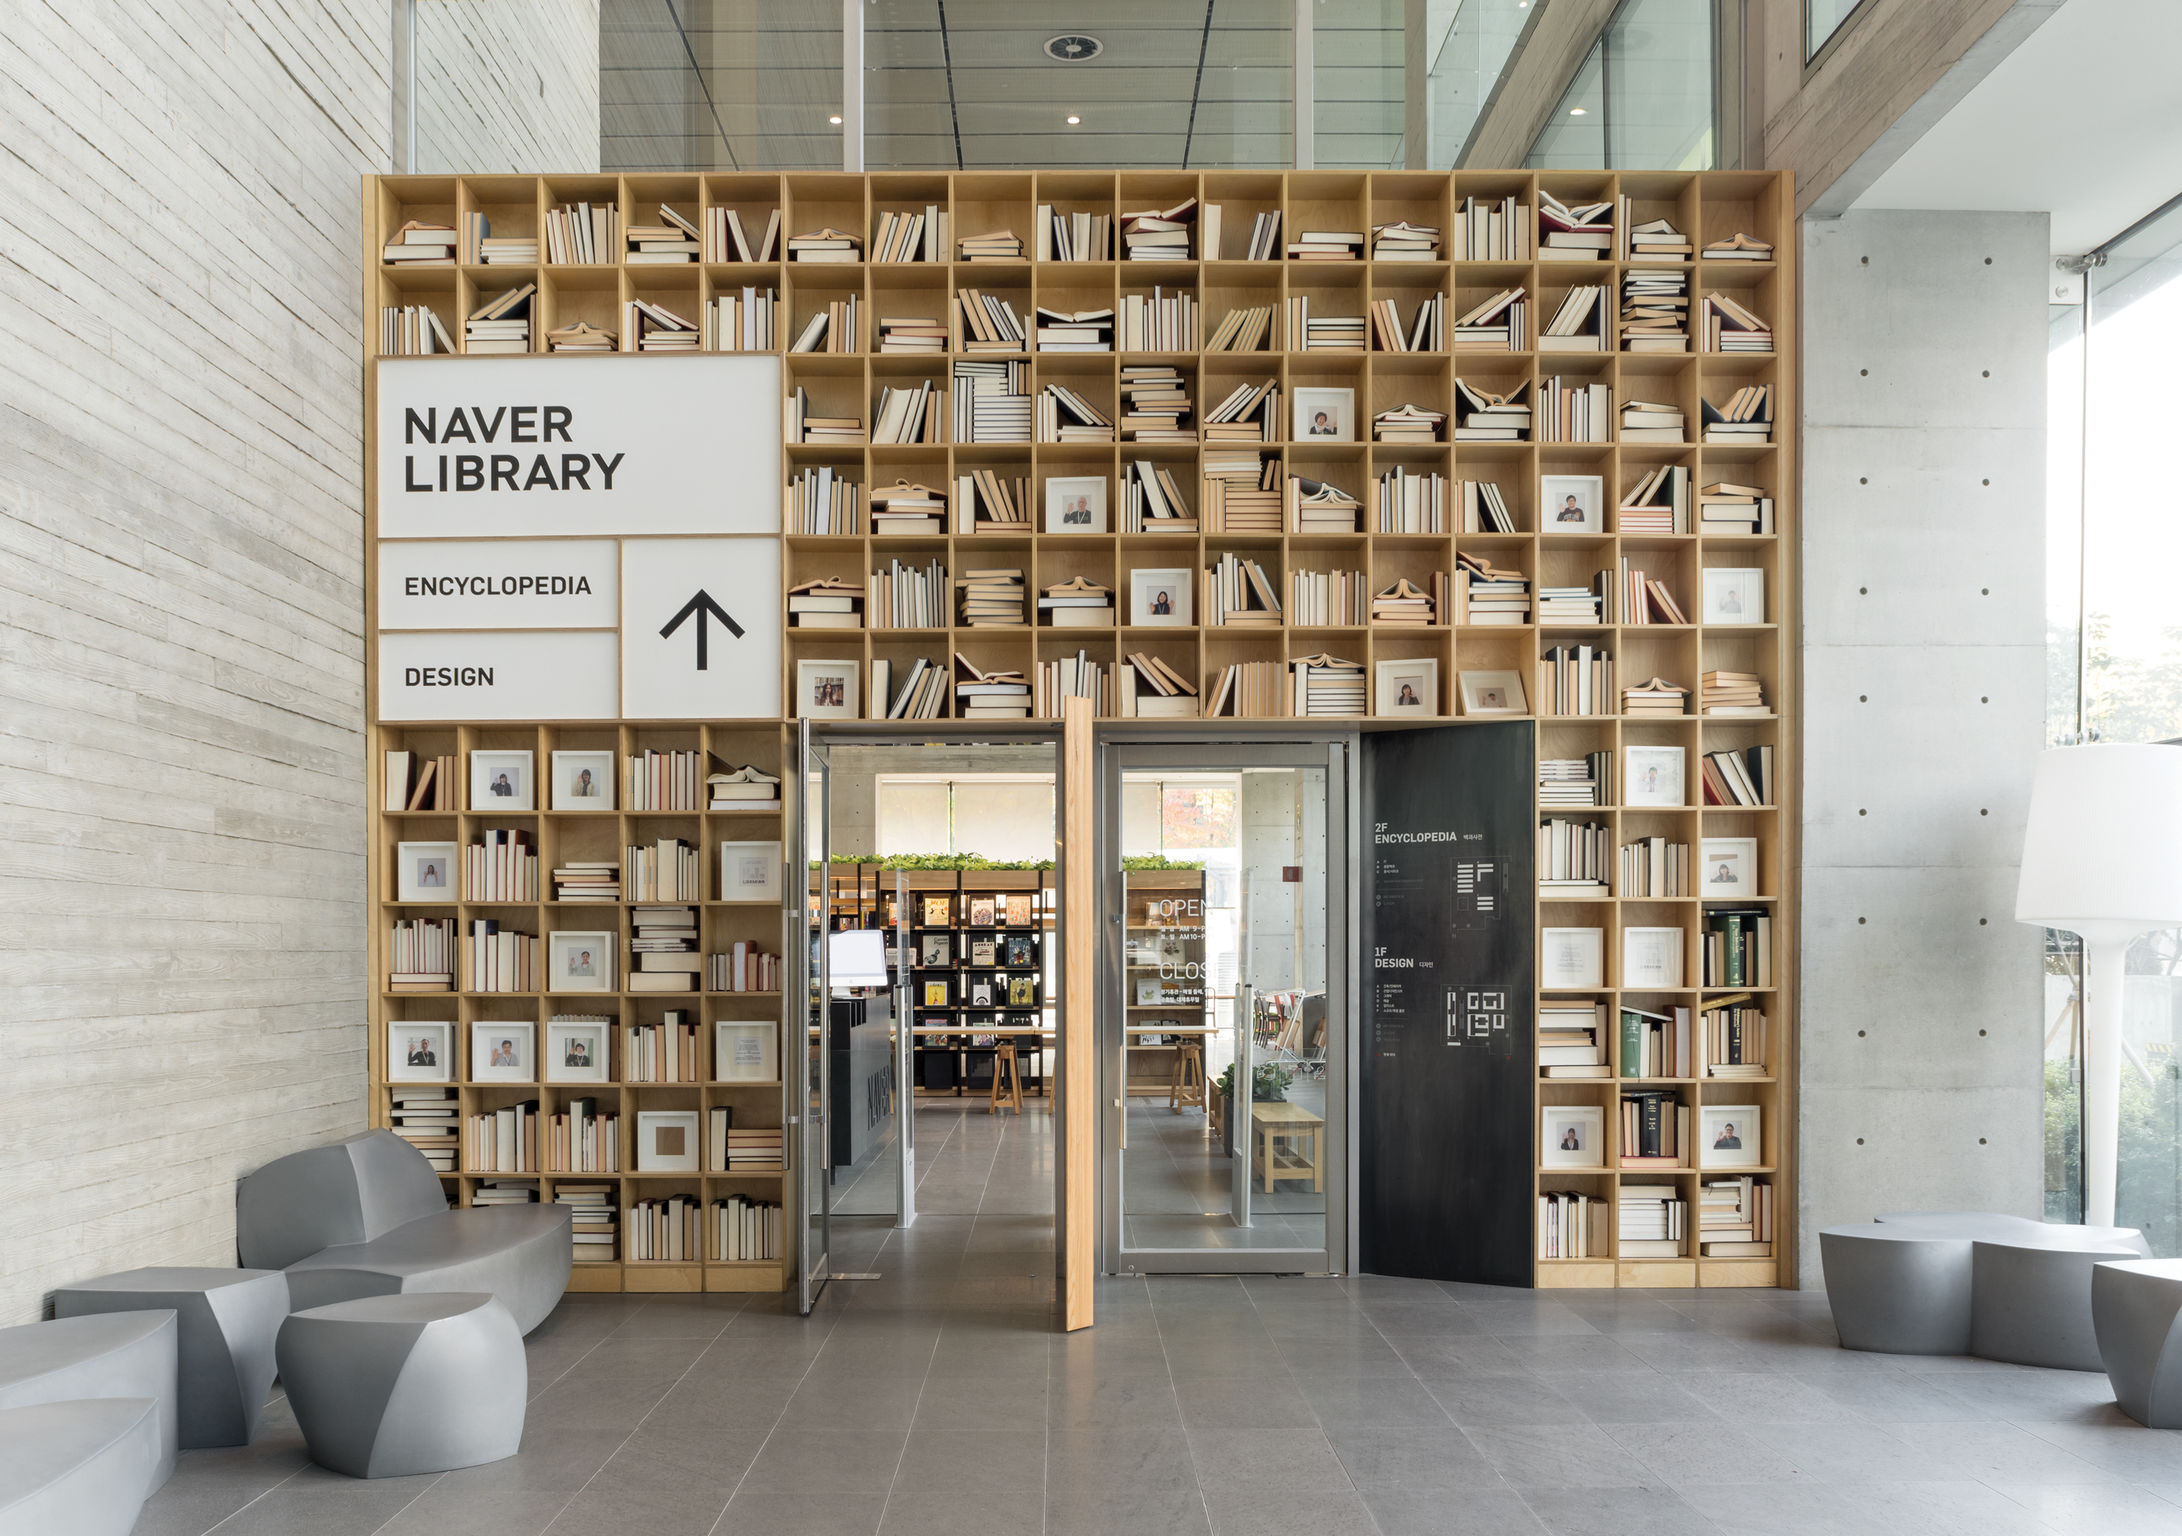 NAVER LIBRARY Office Interior Design